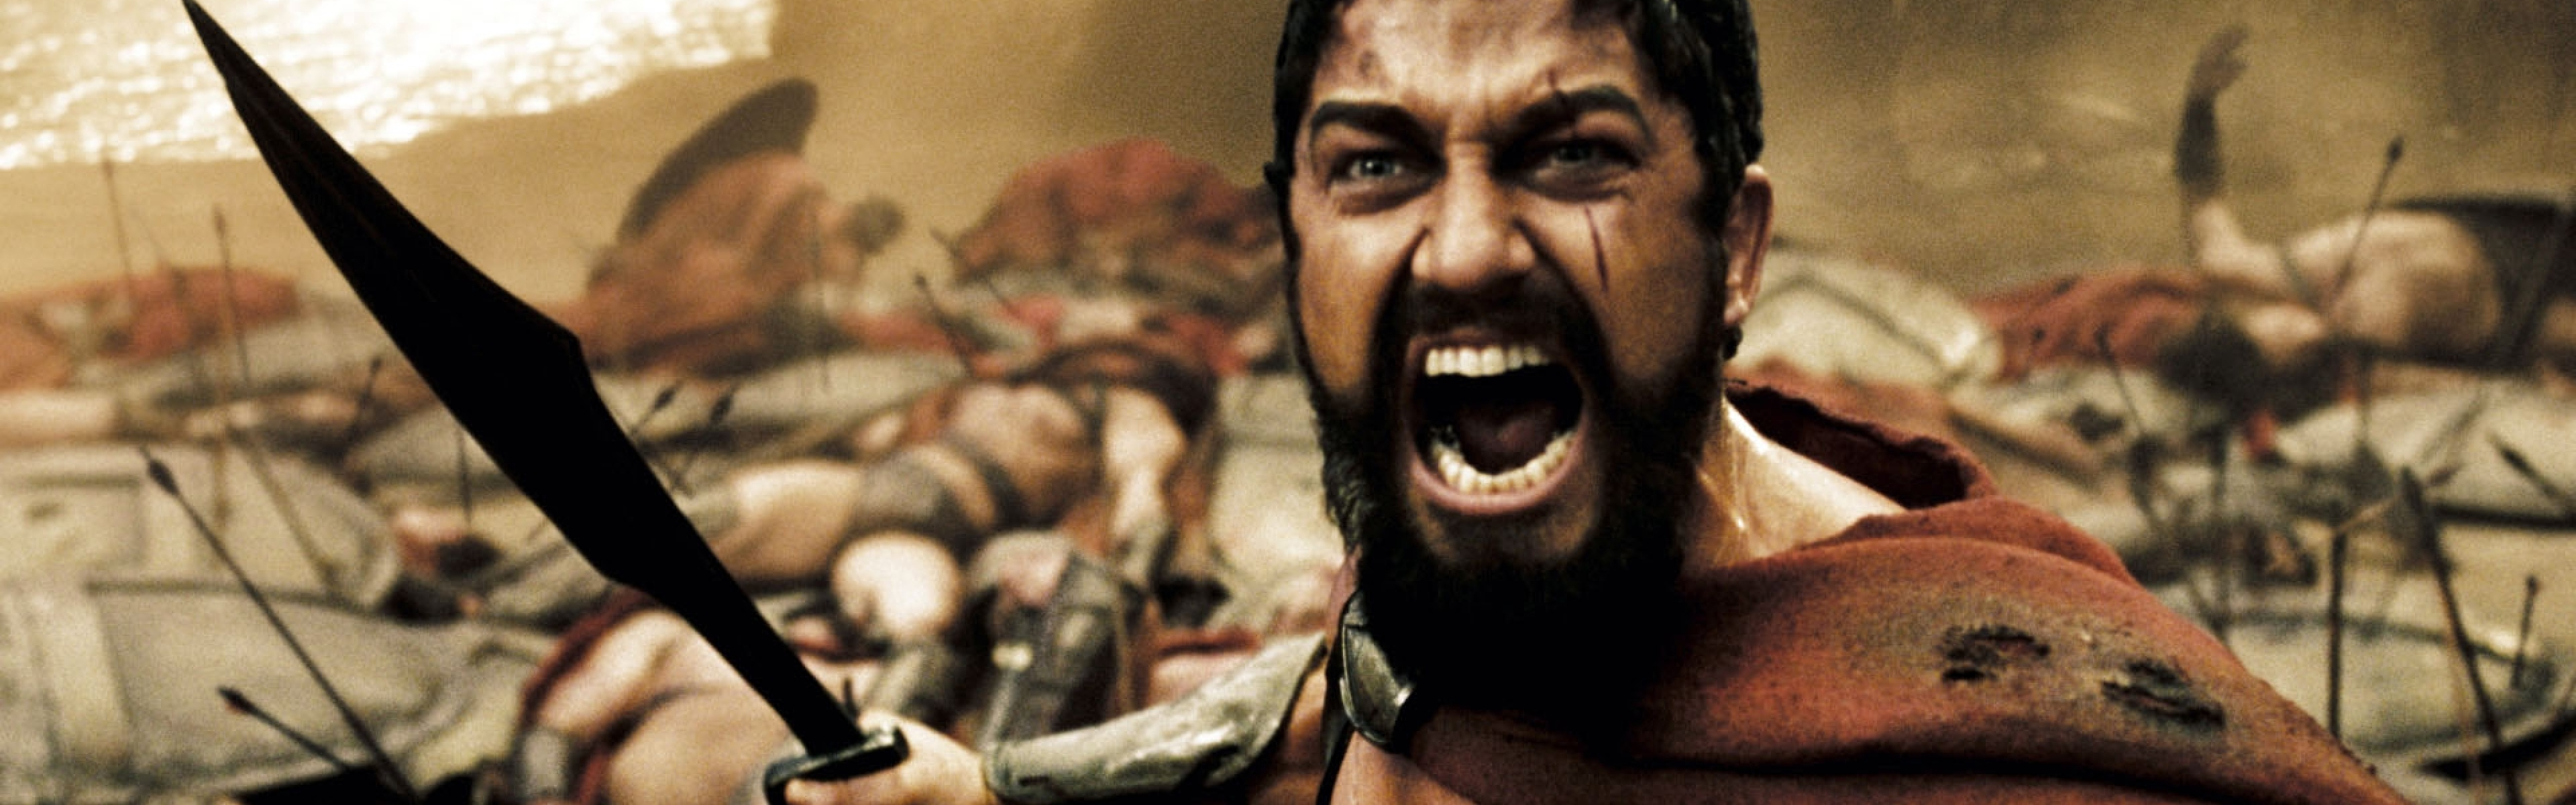 3840x1200 Wallpaper this is sparta